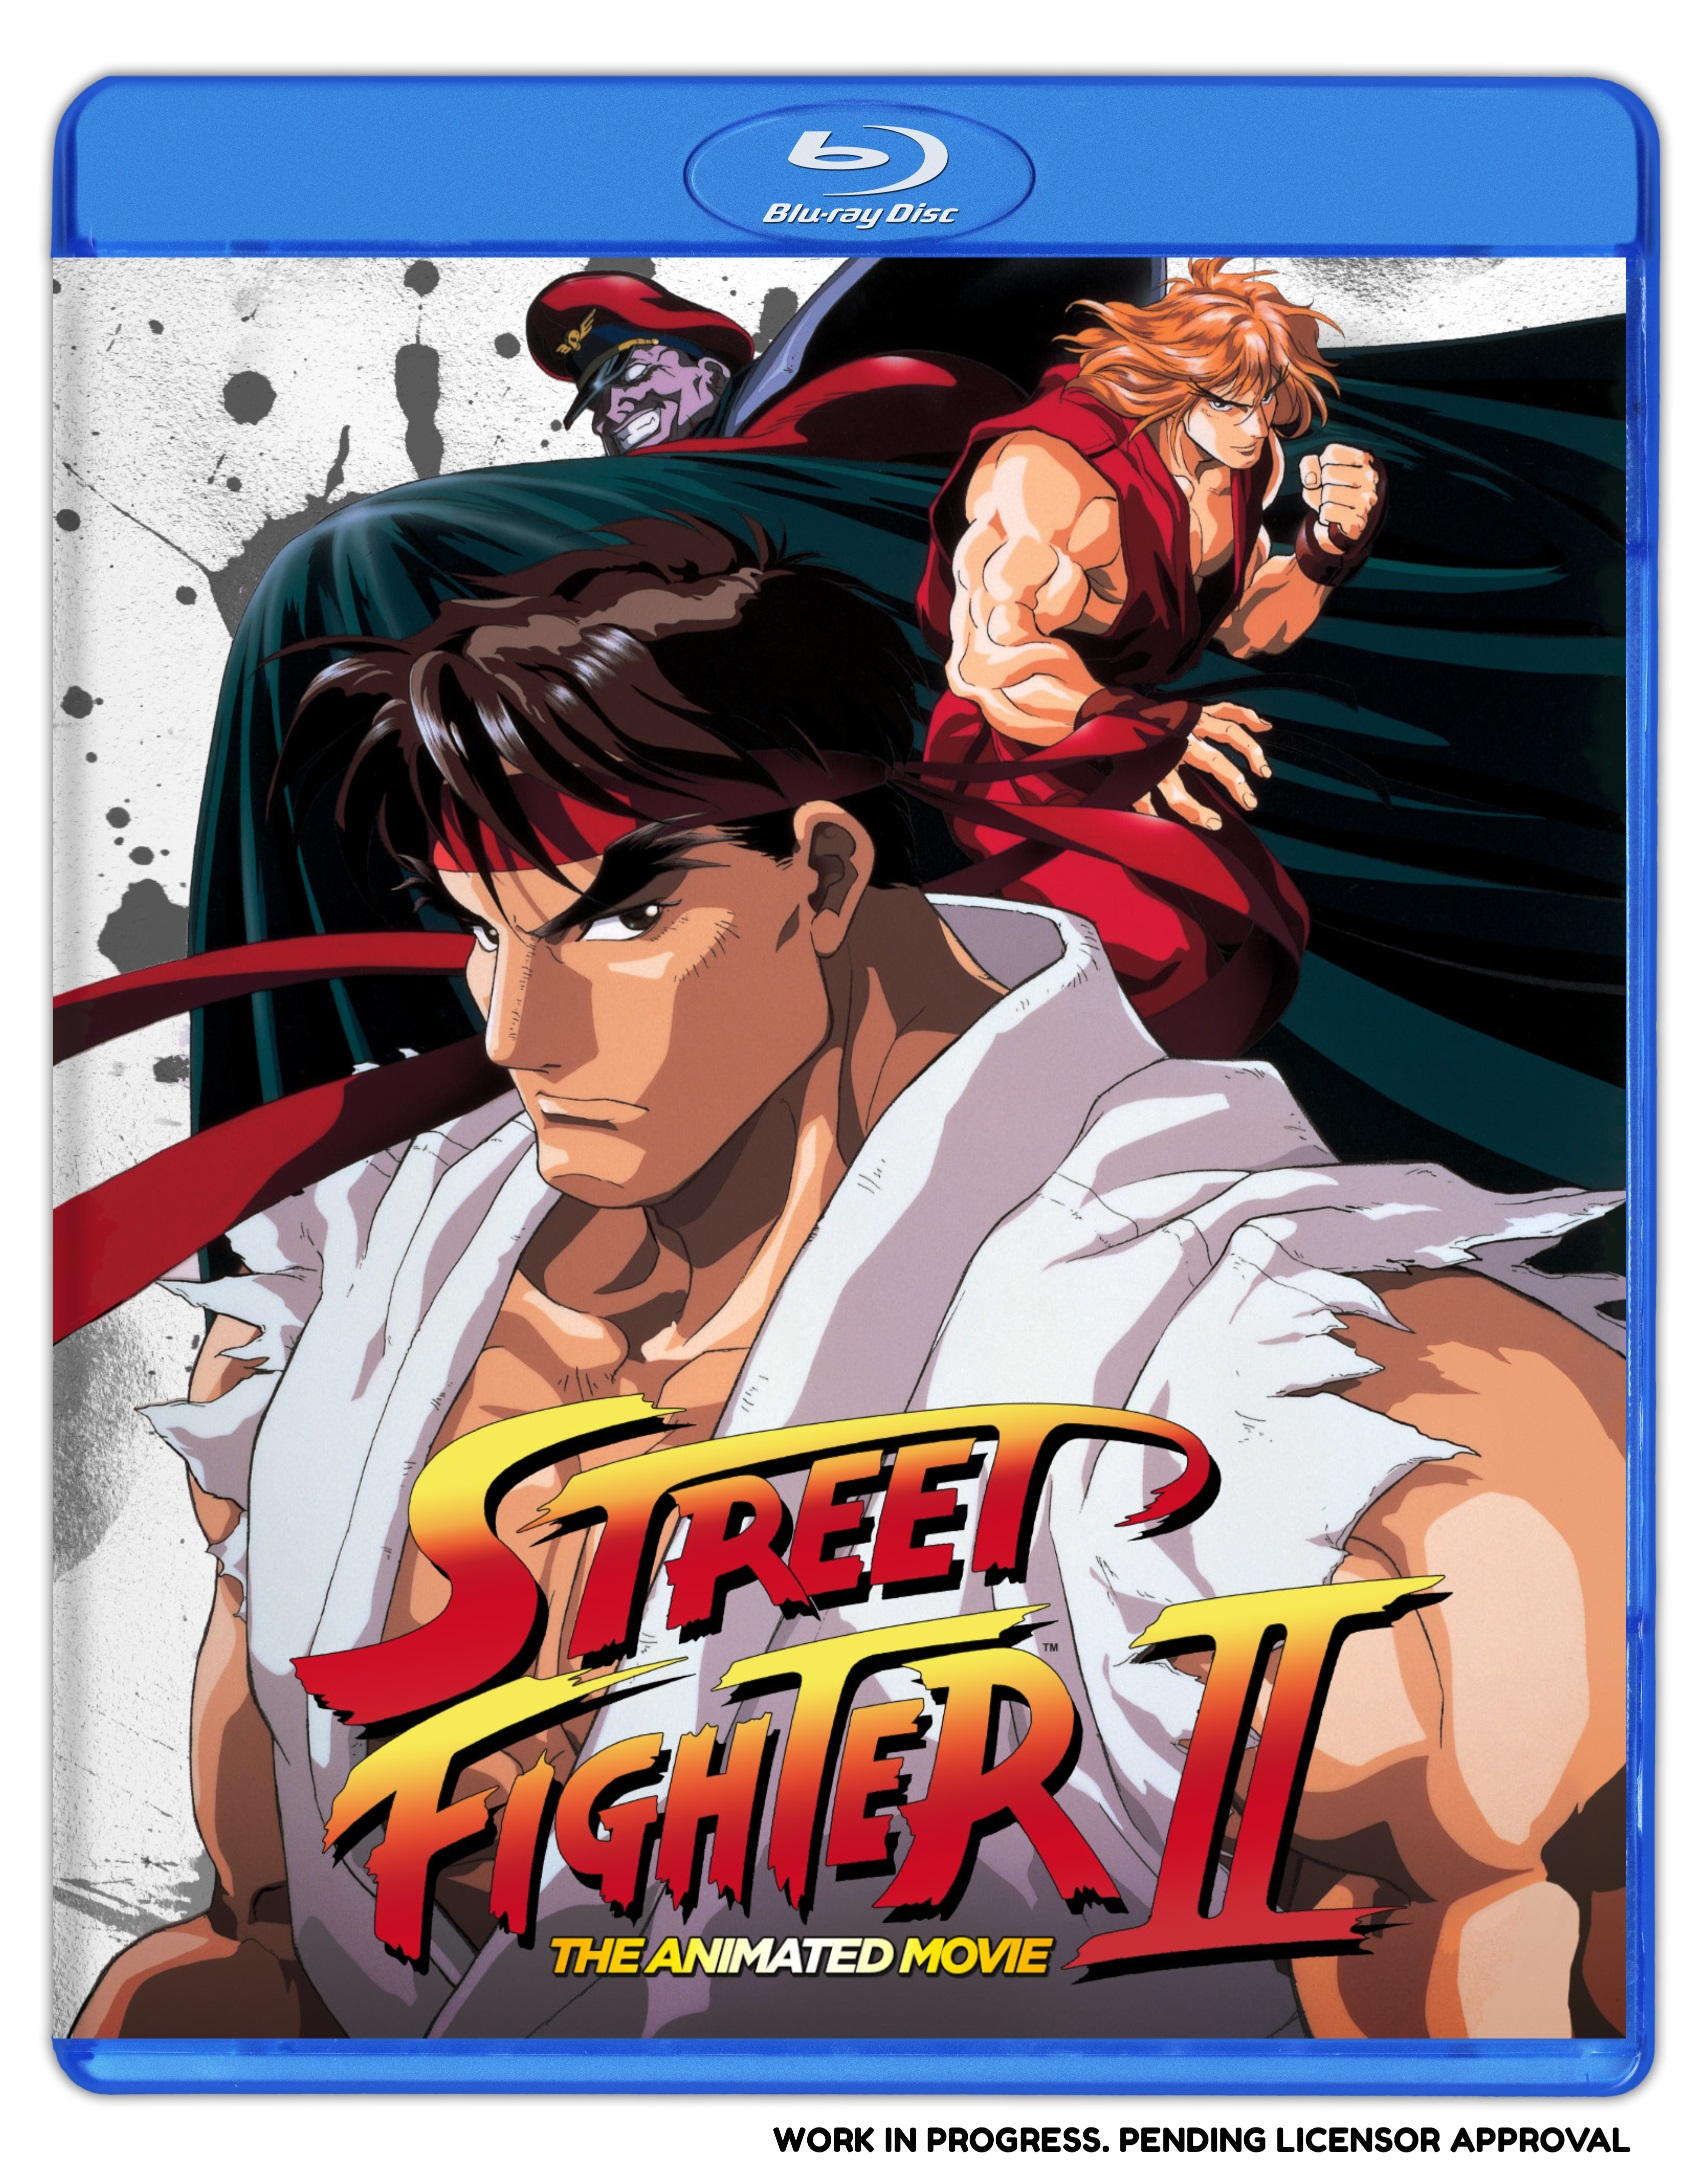 Street Fighter II The Animated Movie Blu-ray 875707096027